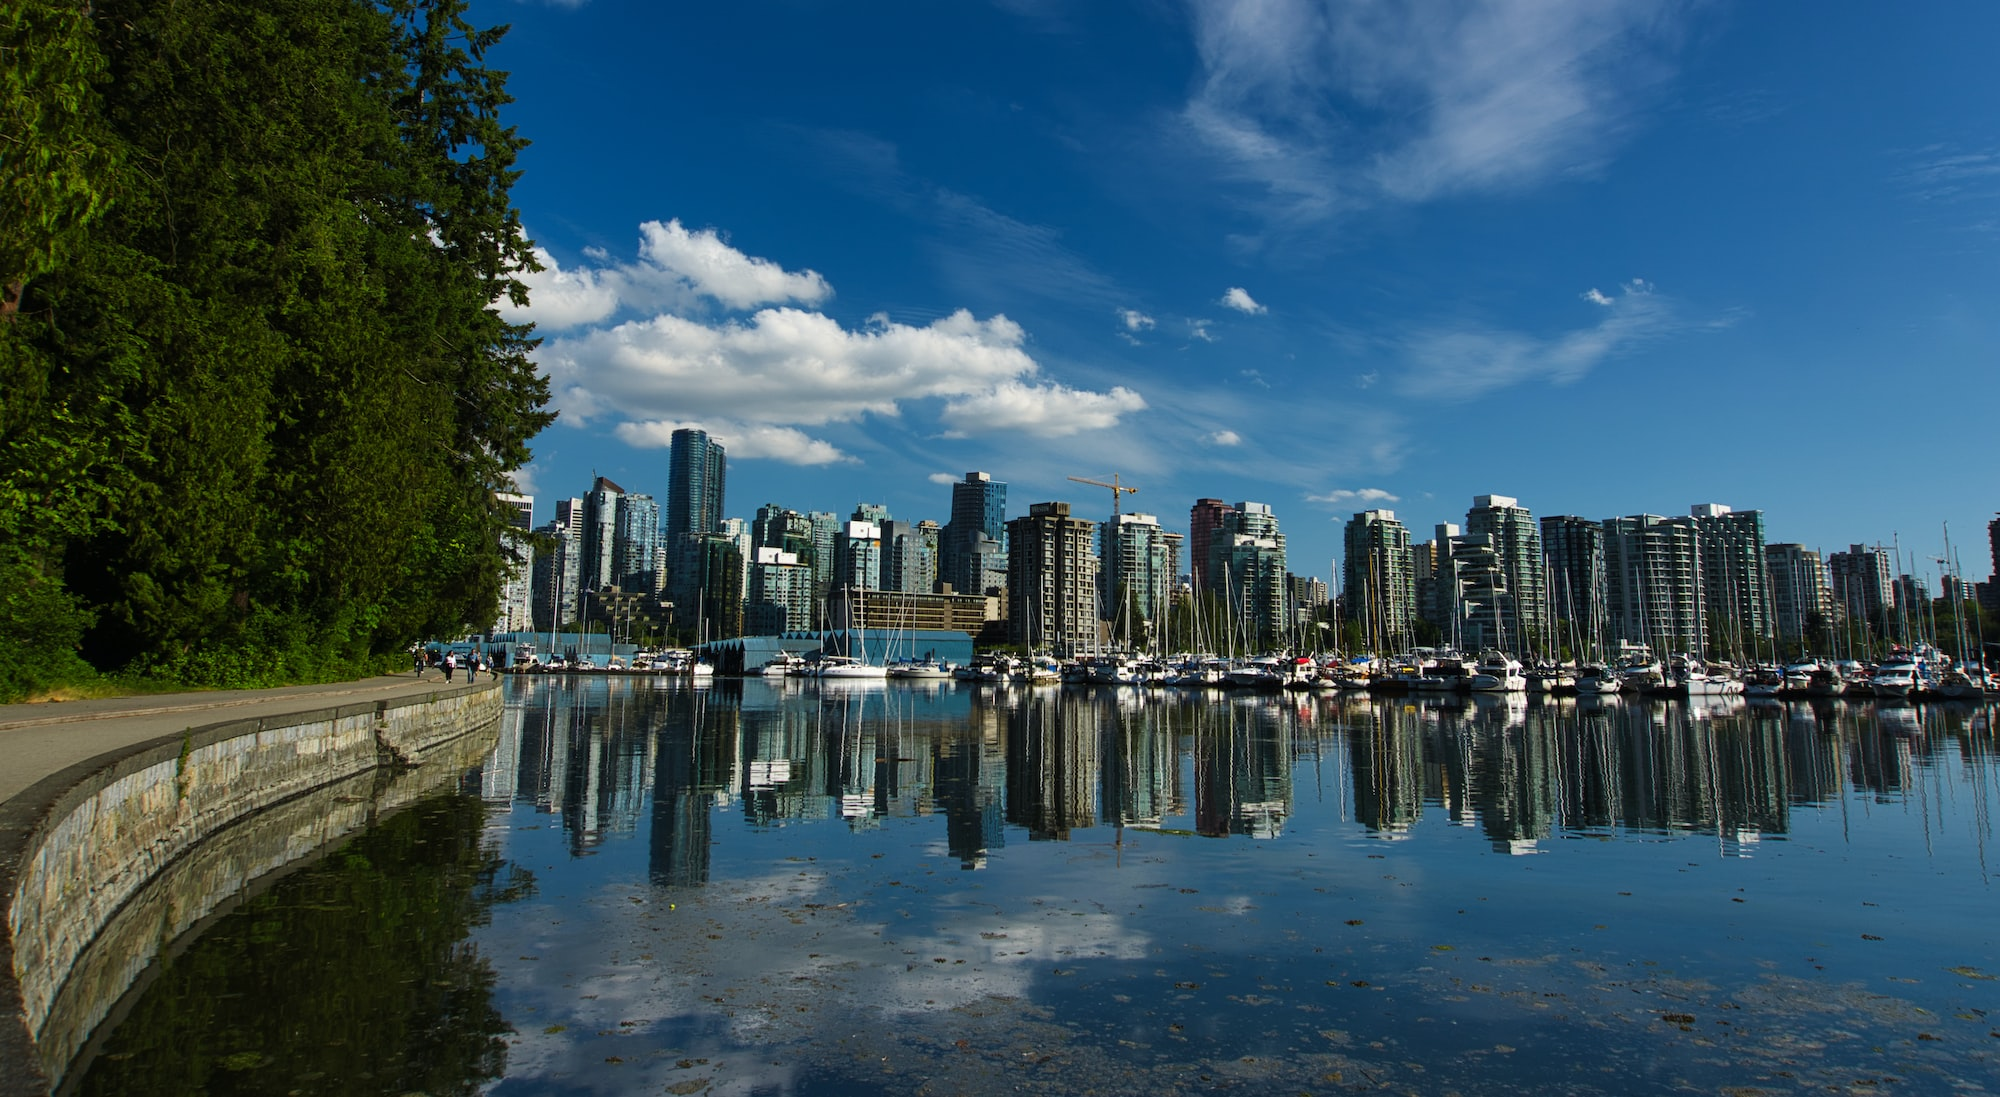 A view of some buildings from the Stanley Park Seawall